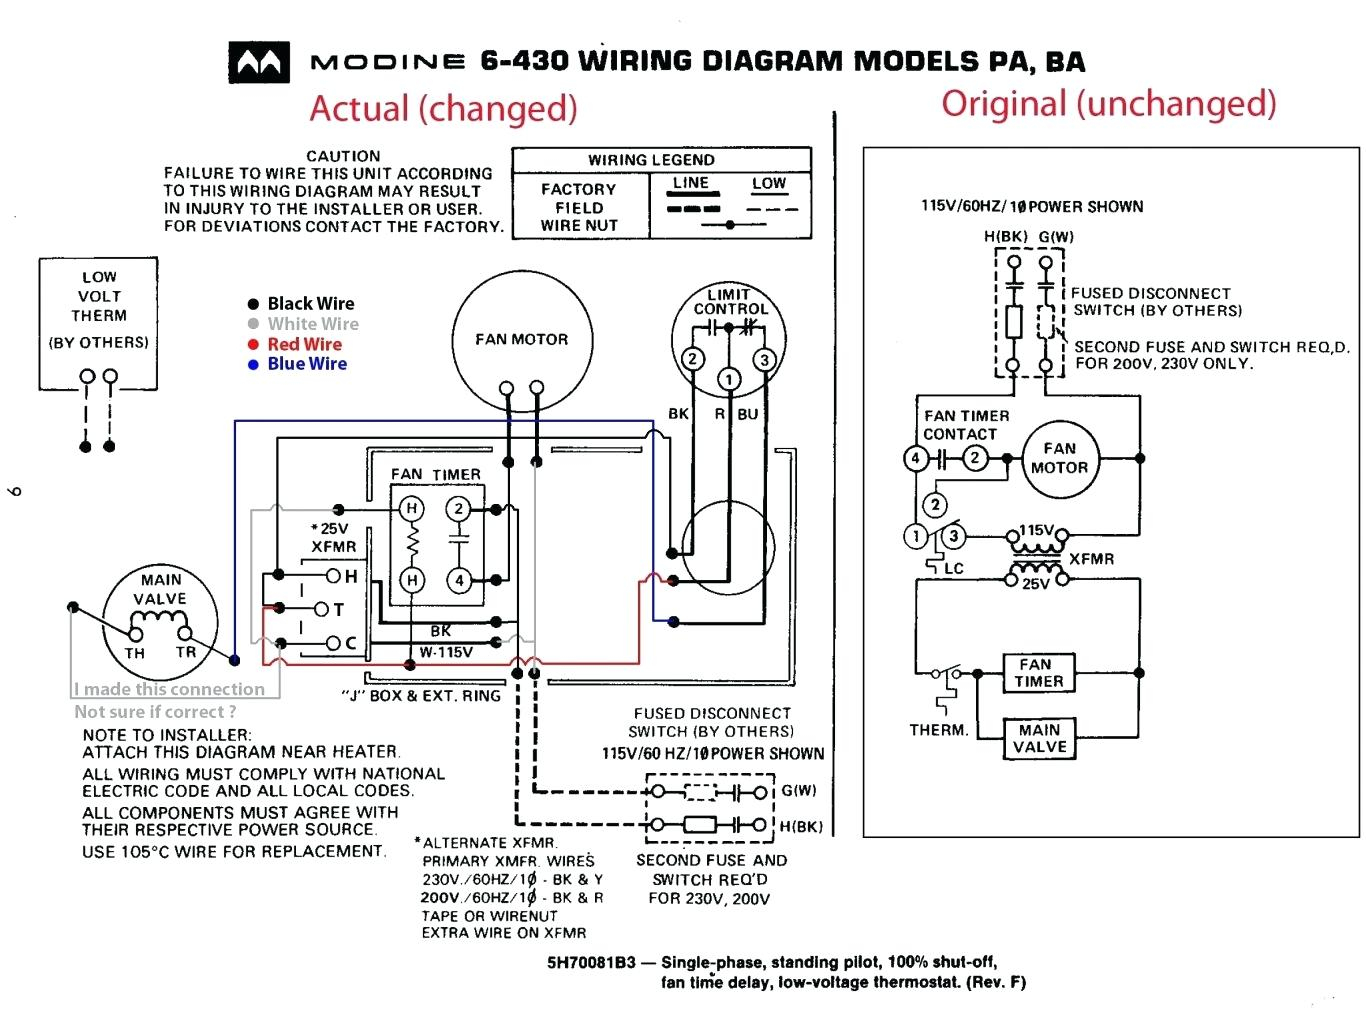 aube rc840t 240 wiring diagram Download-Aube Rc840t 240 Wiring Diagram Inspirational Furnace thermostat Wiring Diagram Rv Shower Valves thermostatic 6-j